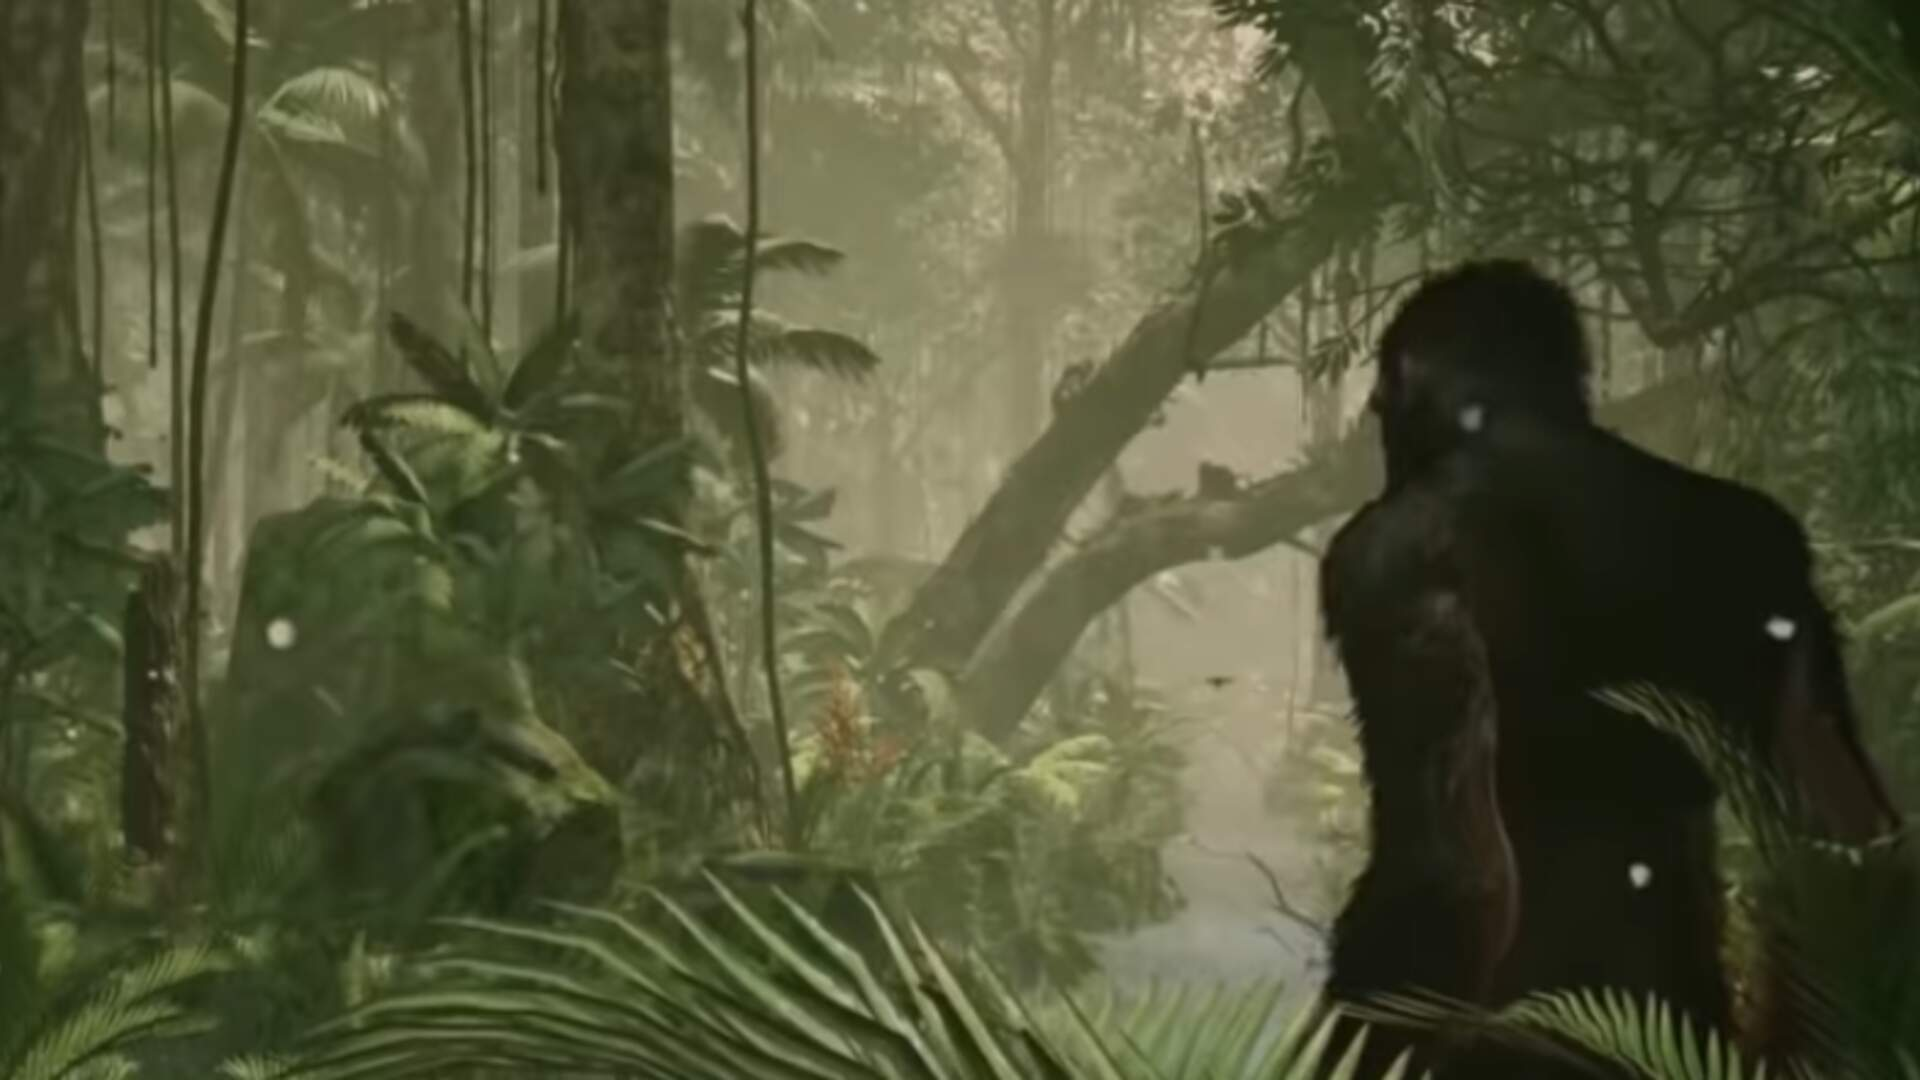 Assassin's Creed Creator Shows Off New Game, Ancestors: A Human Odyssey, at Game Awards